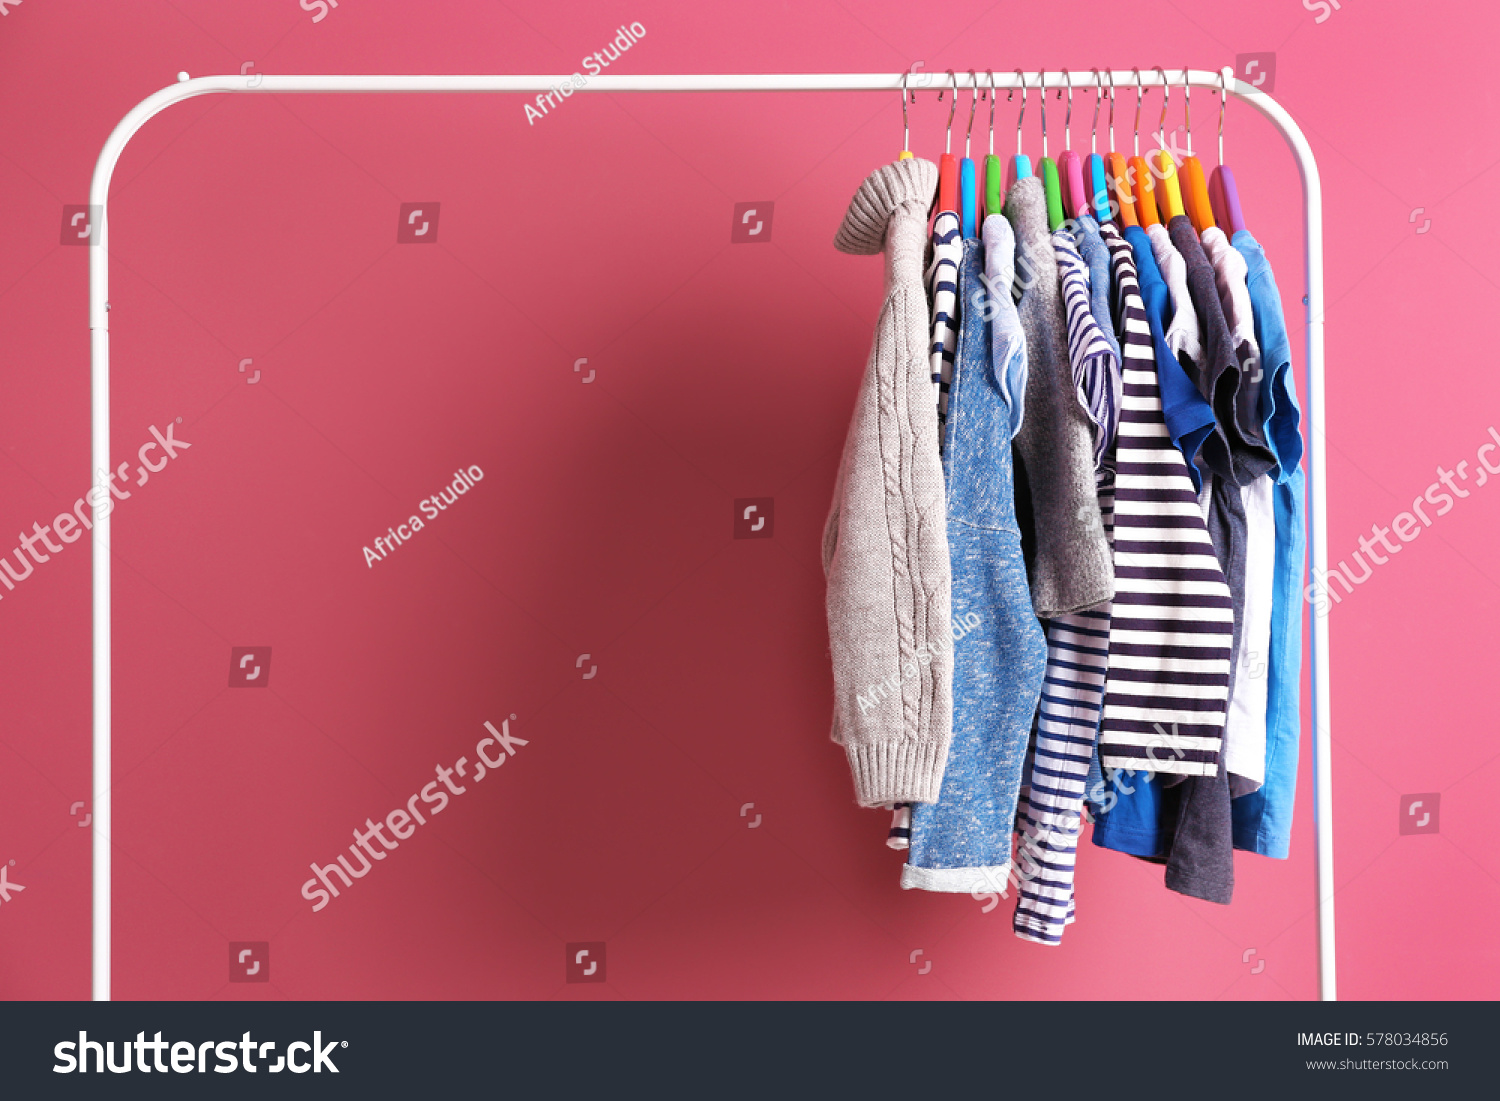 A Clothes Rack Needed to be Filled